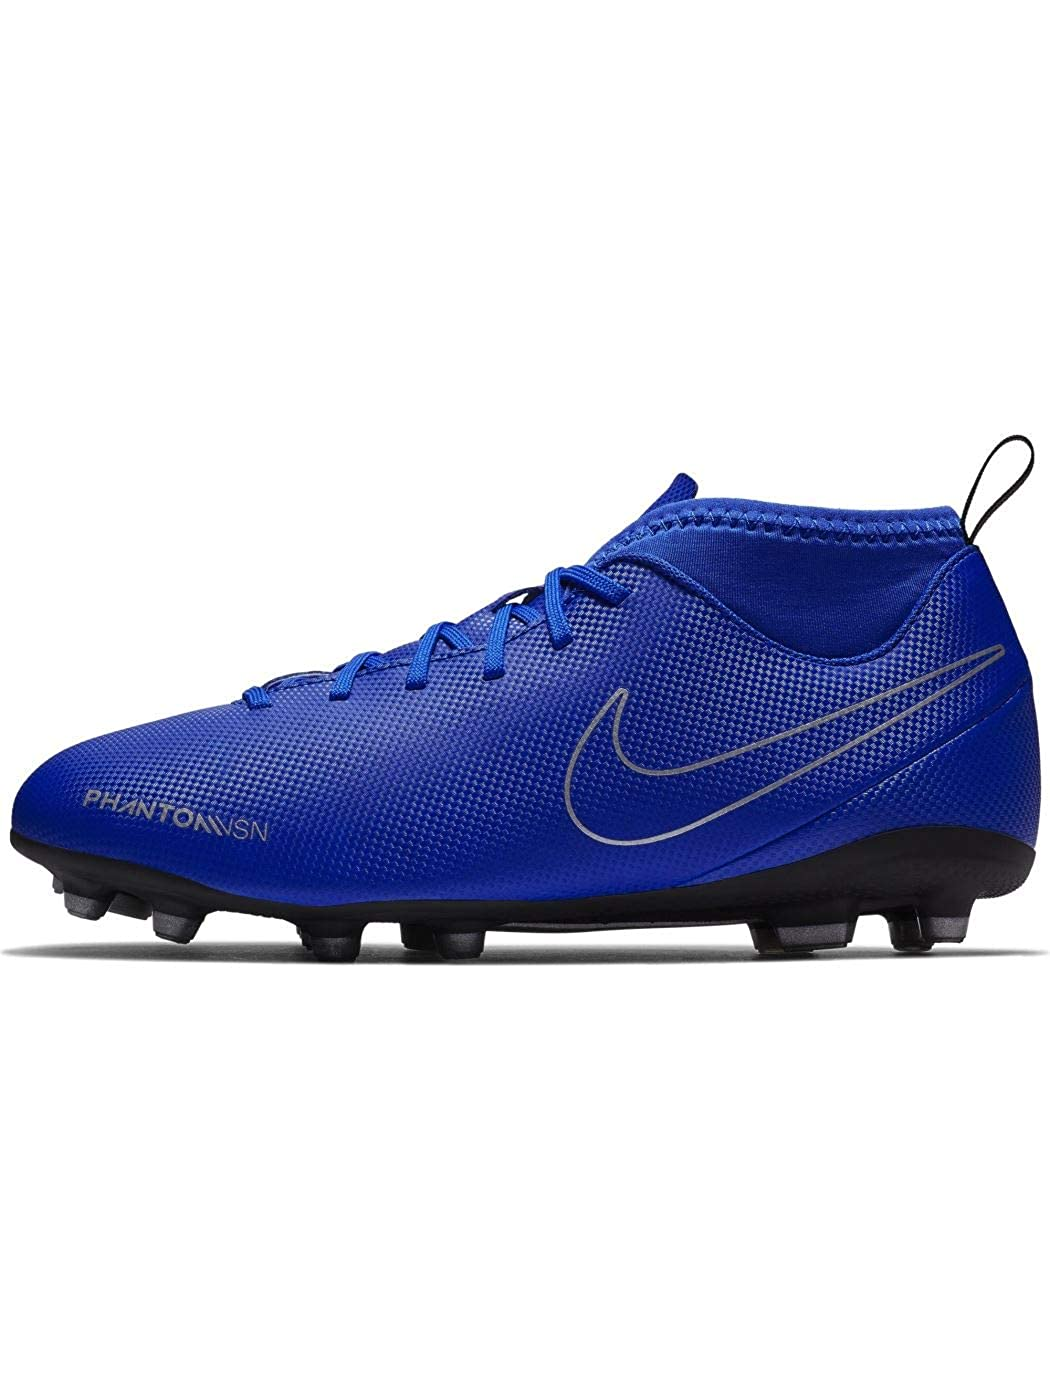 Nike Jr. Phantom Vision Club Dynamic Fit MG, Scarpe da Calcio Unisex – Bambini